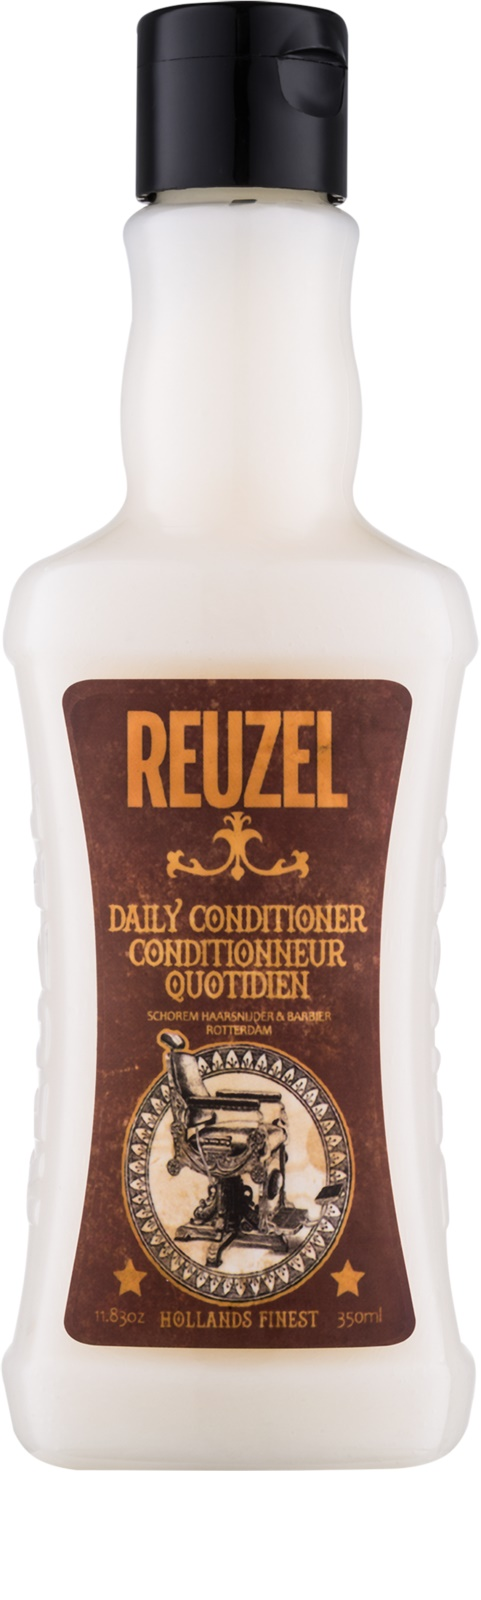 REUZEL Daily Conditioner 350 ml